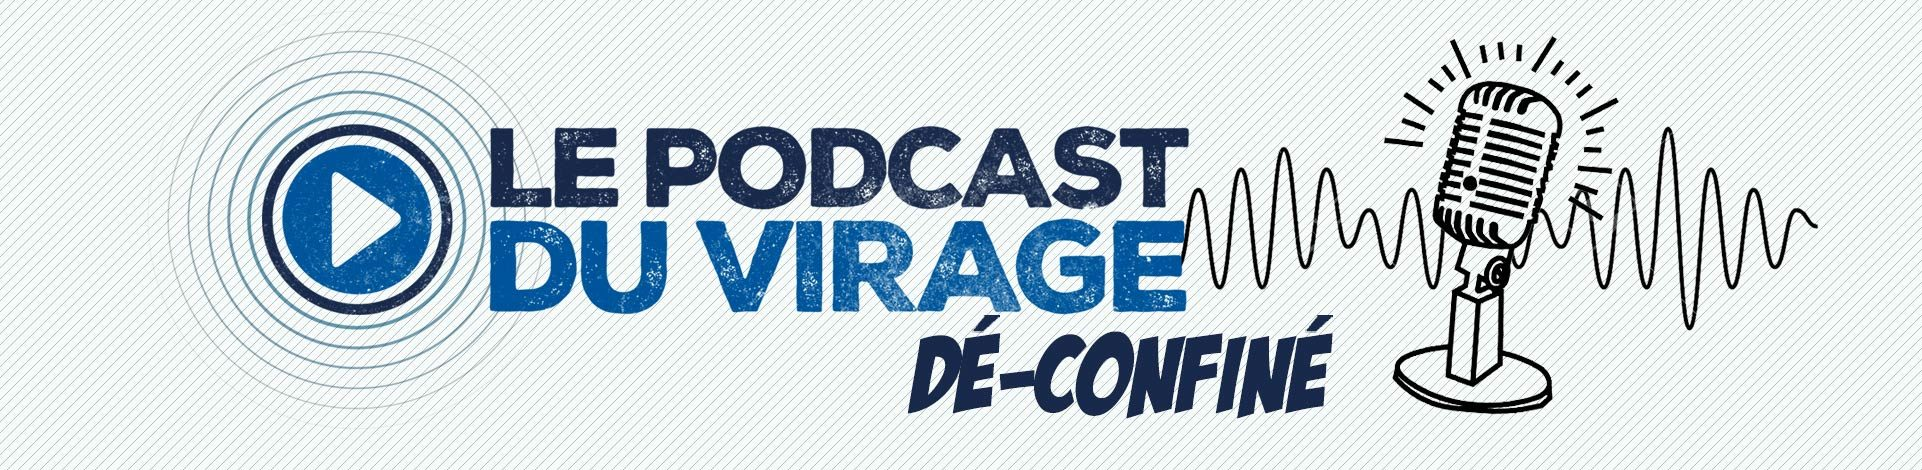 Le podcast du Virage #13